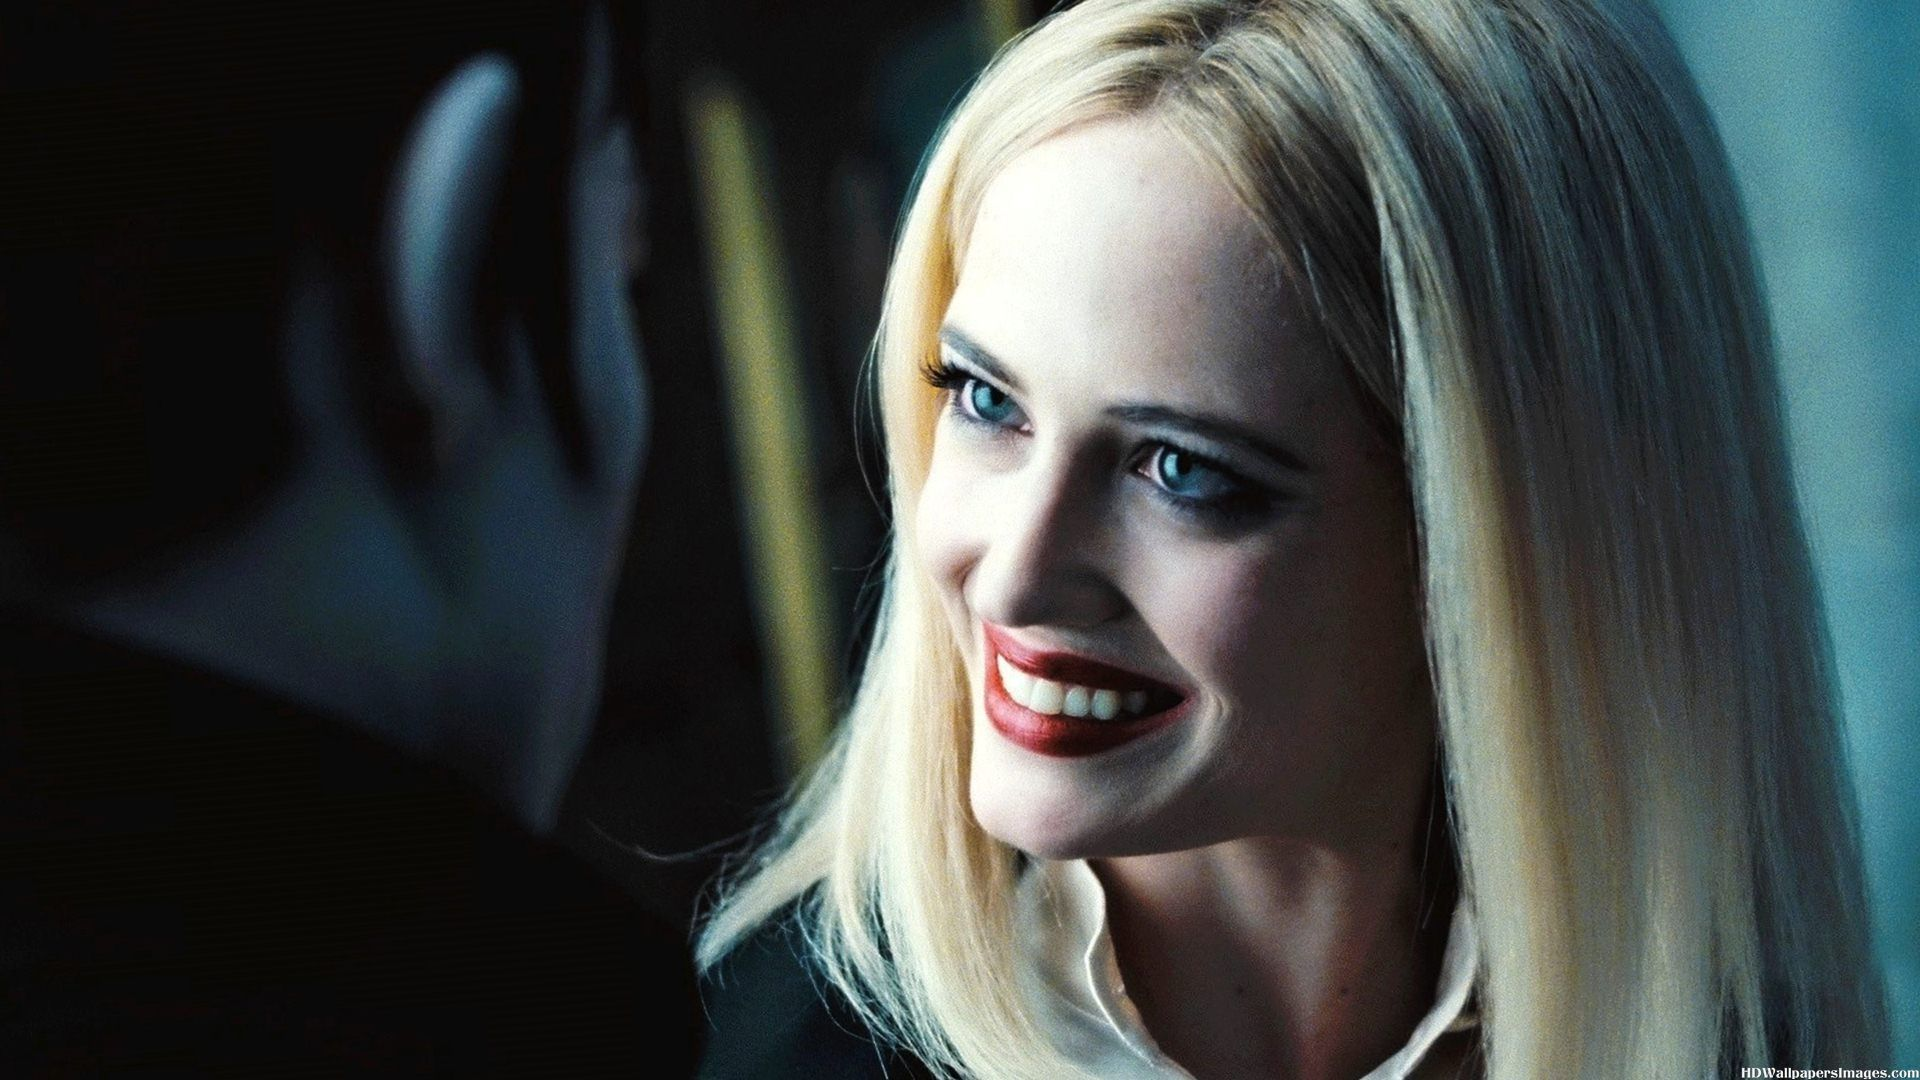 Eva Green Full HD Wallpaper And Background Image